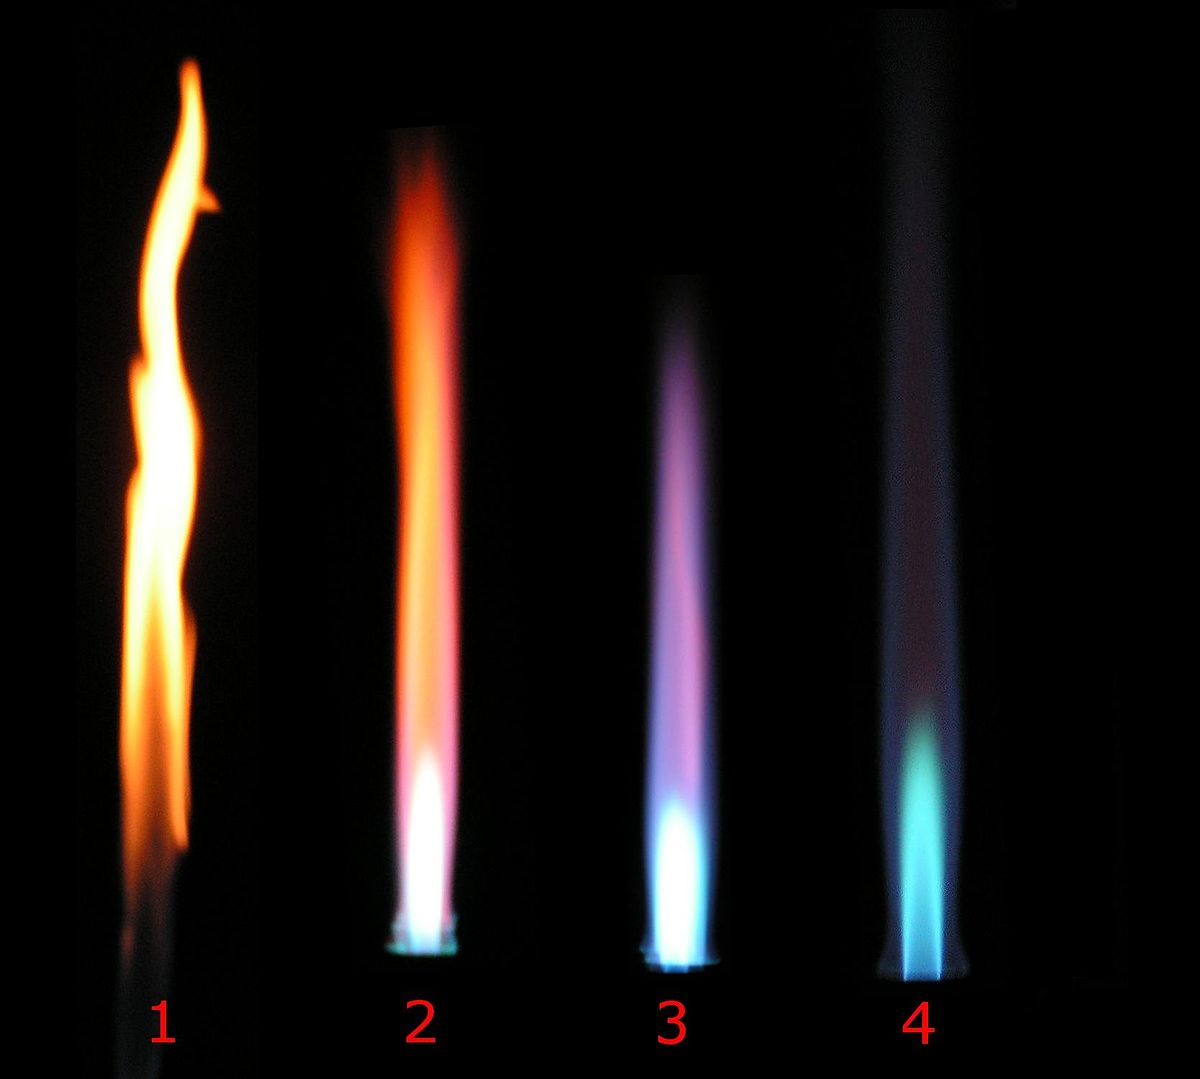 Bunsen burner flame types.jpg